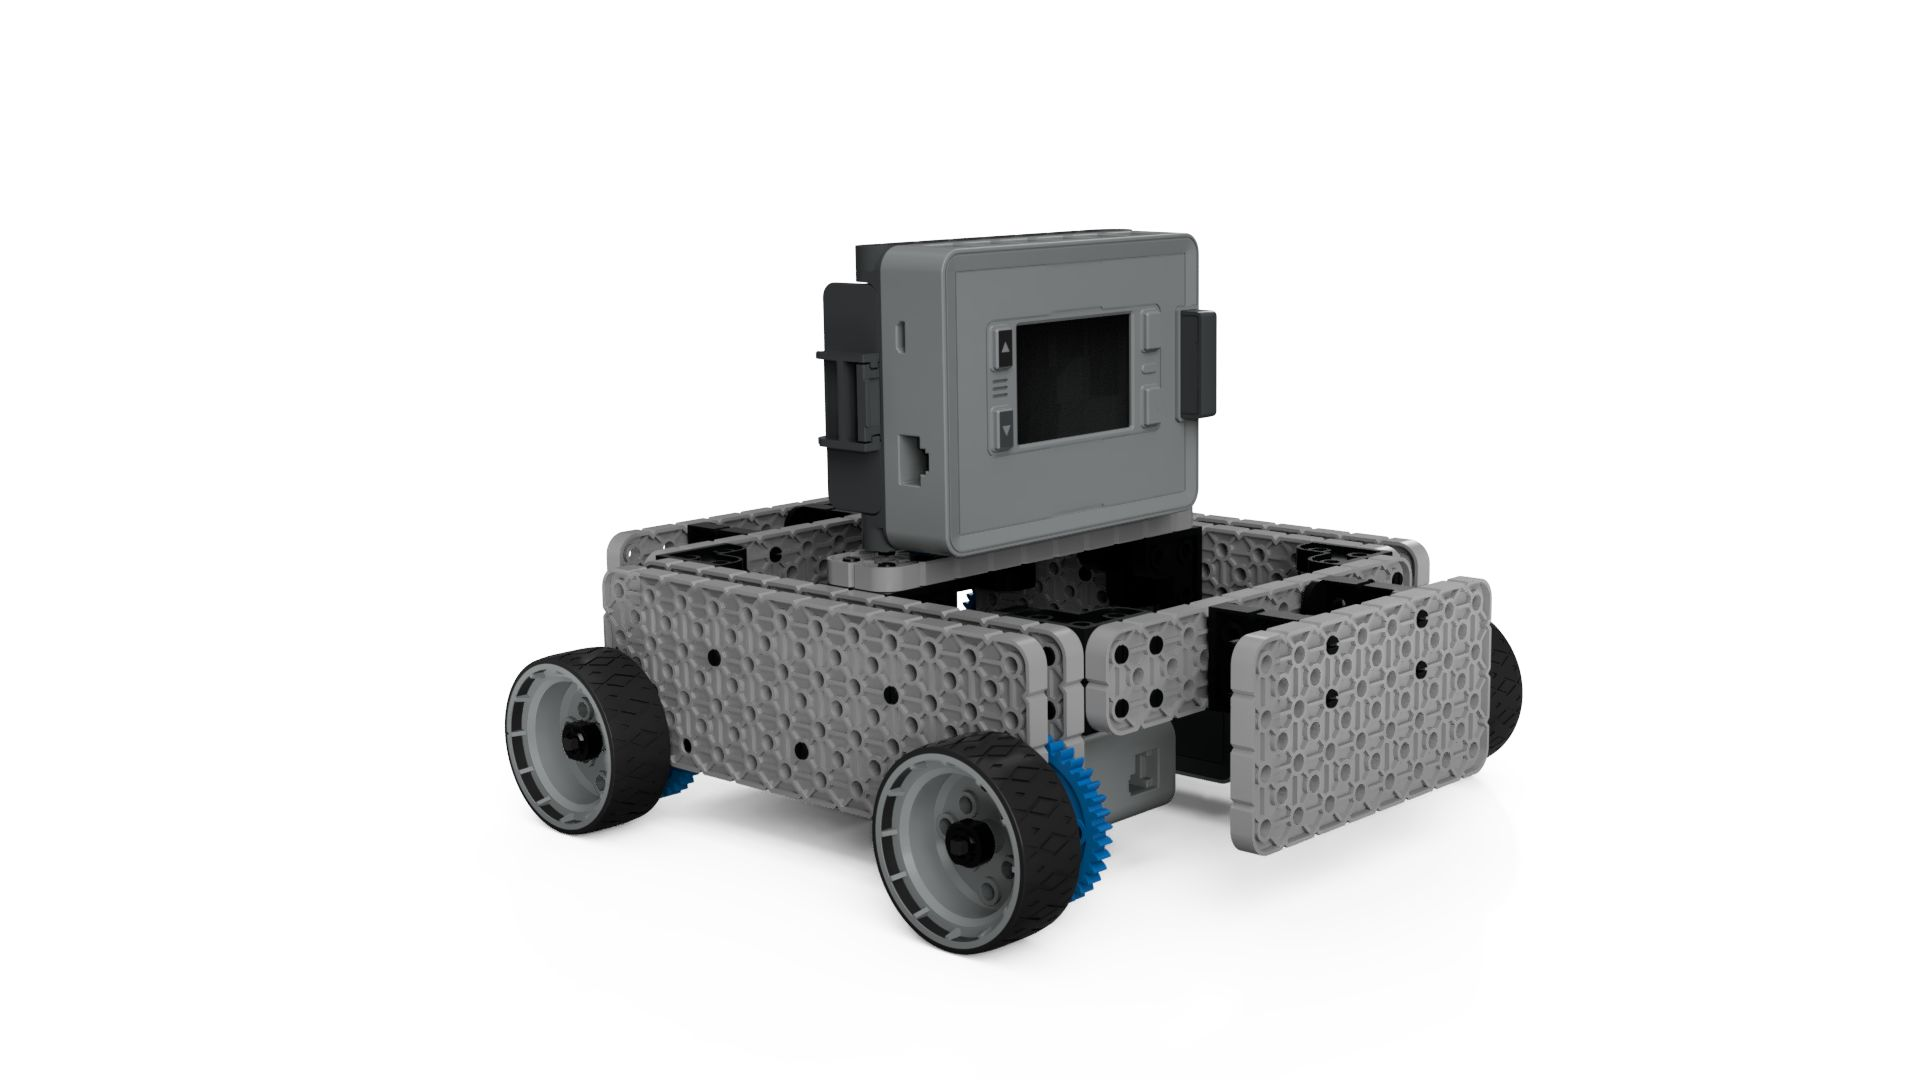 The-power-turtle-drivetrain---vex-iq-robotics-2019-may-25-06-10-59pm-000-customizedview1143465528-png-3500-3500